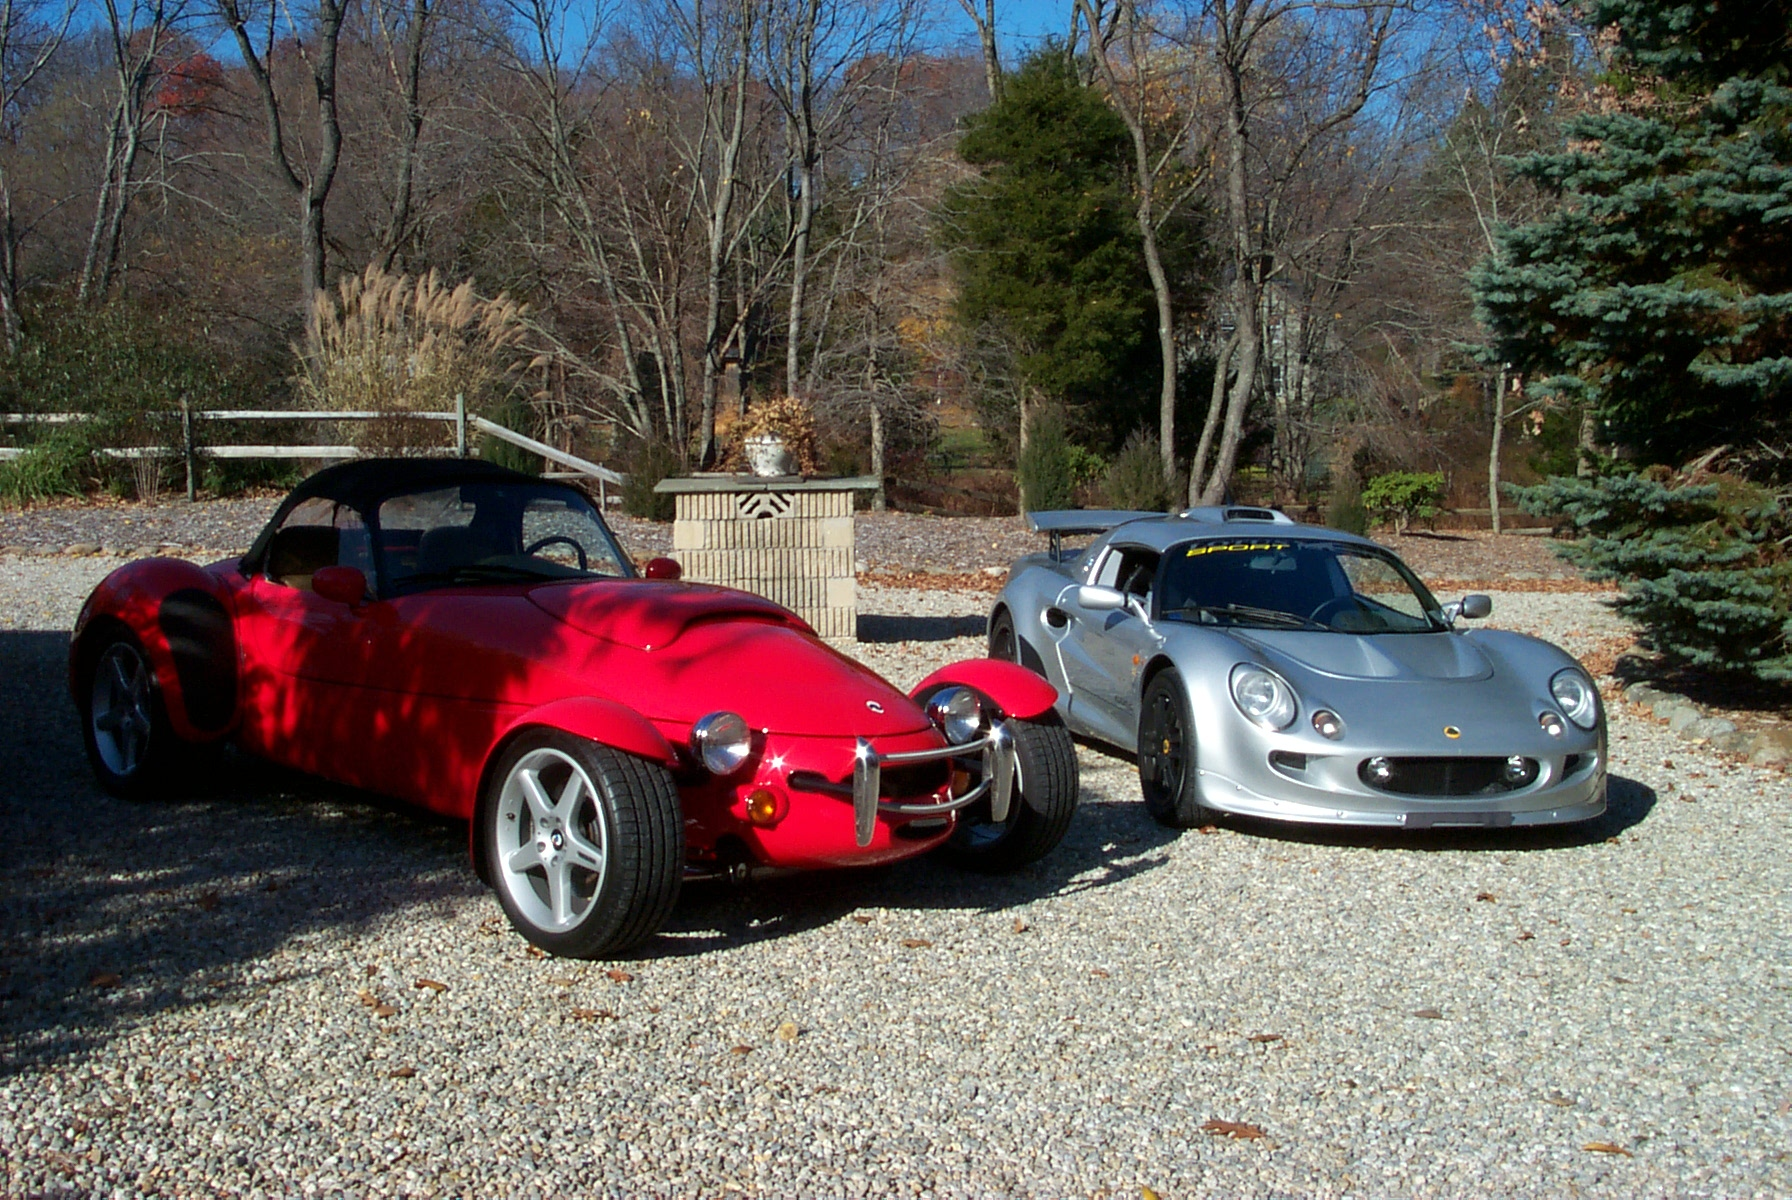 Cars panoz aiv roadster 2009